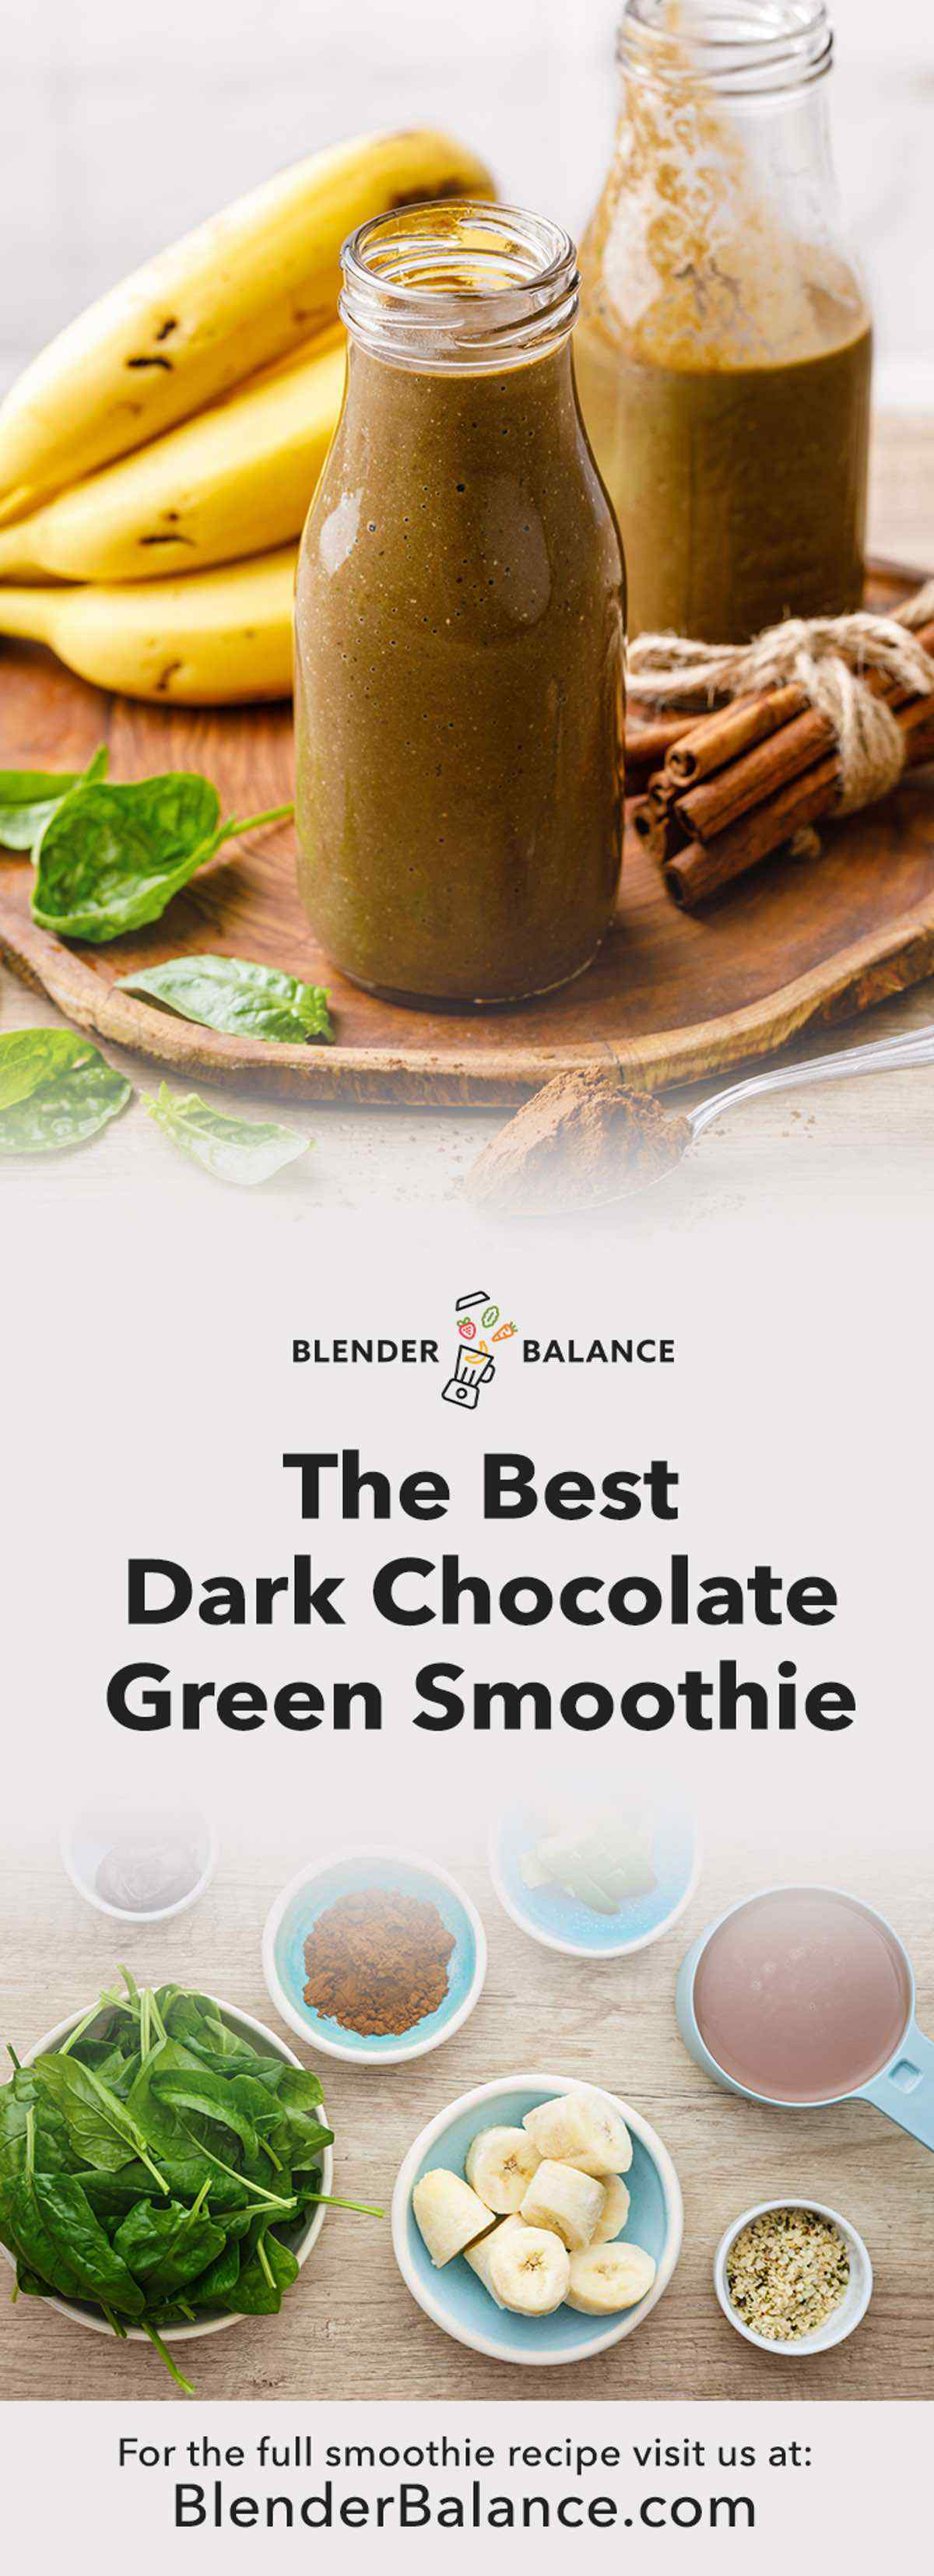 Dark Chocolate Green Smoothie